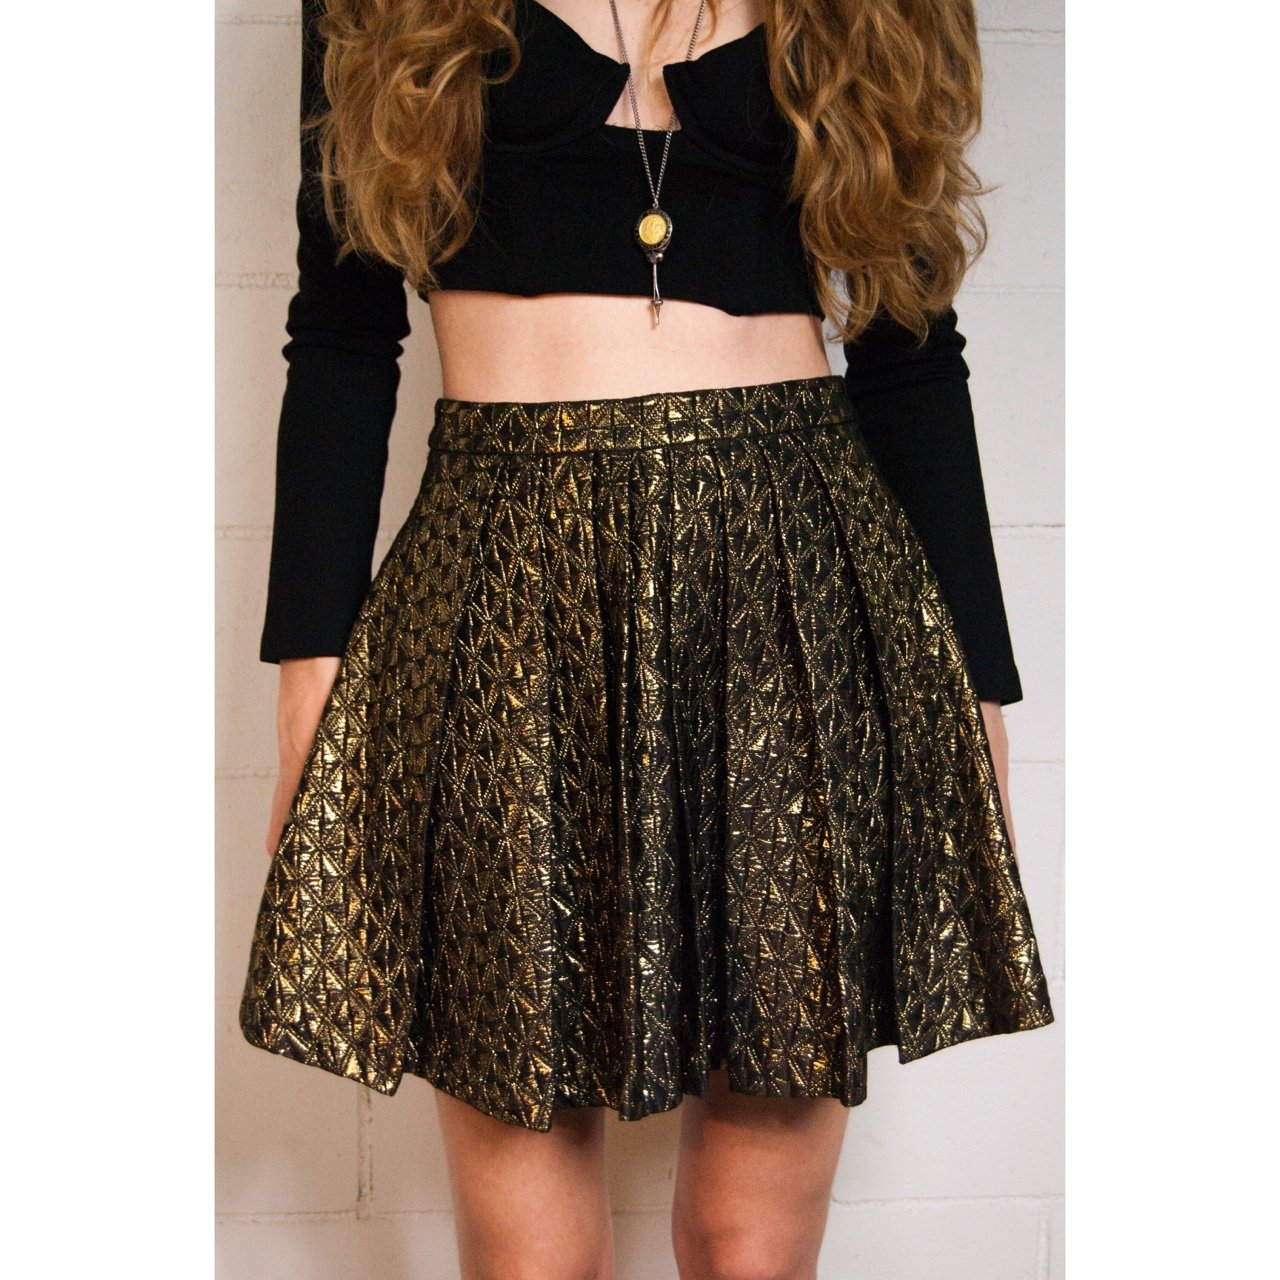 high-waisted mini skirt in an amazing black-and-gold never - Depop 1c449c3162c